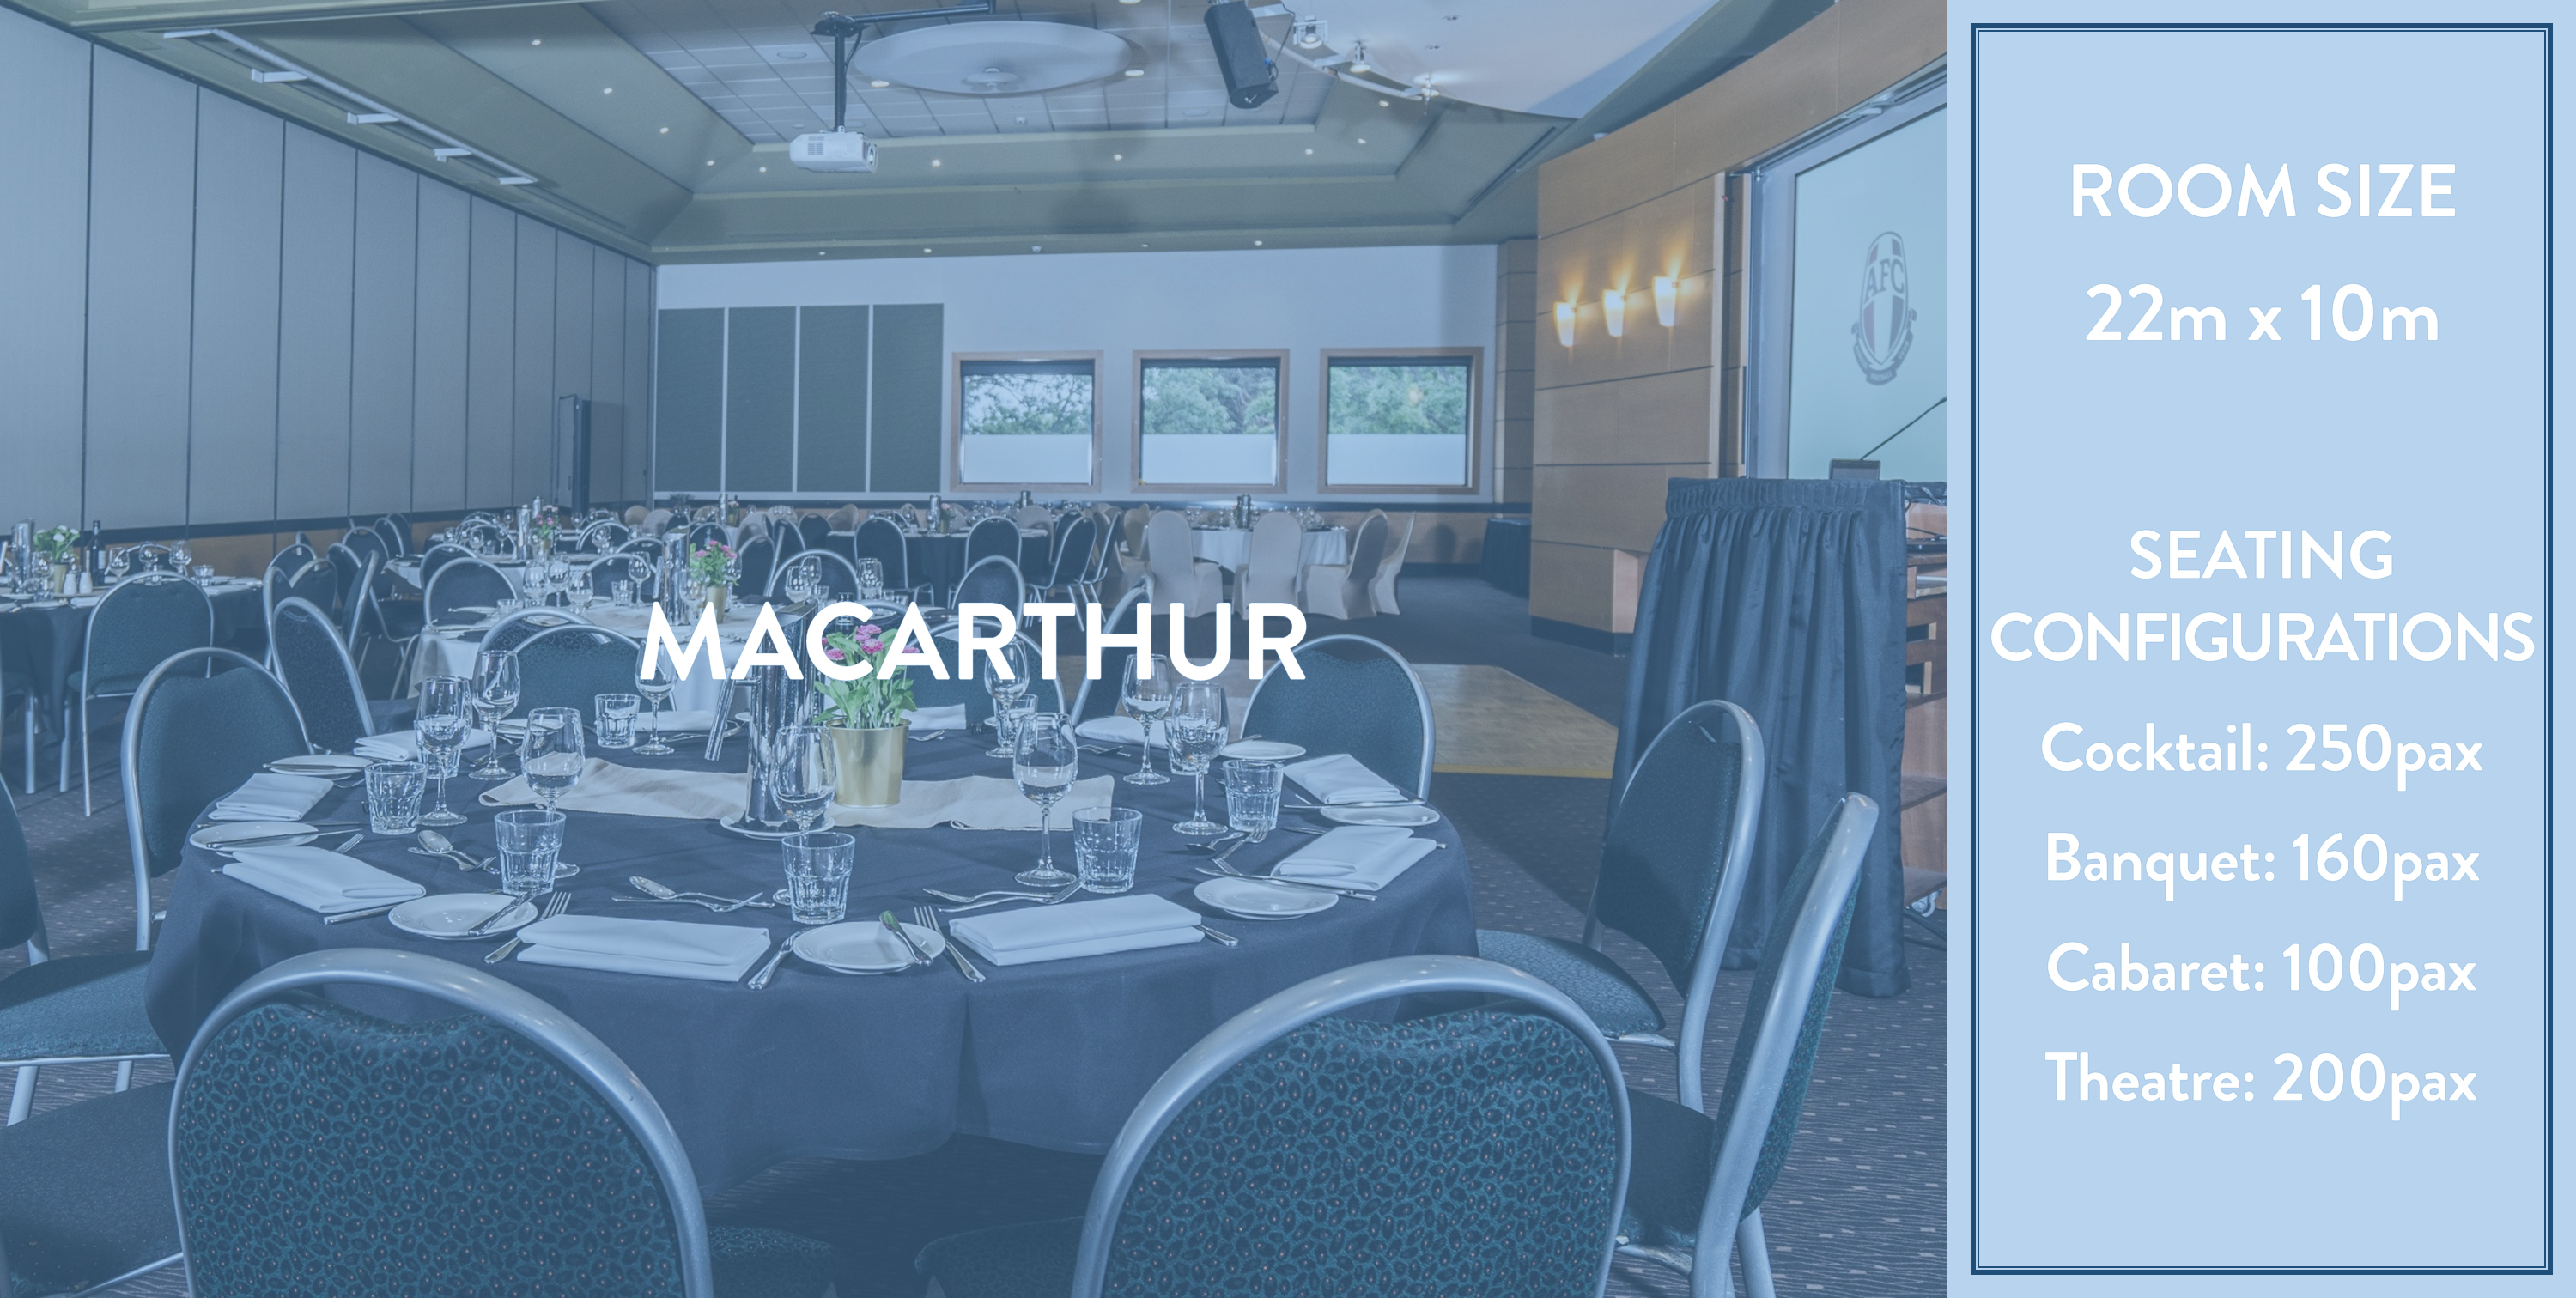 Ainslie Football Club Functions - Macarthur Room